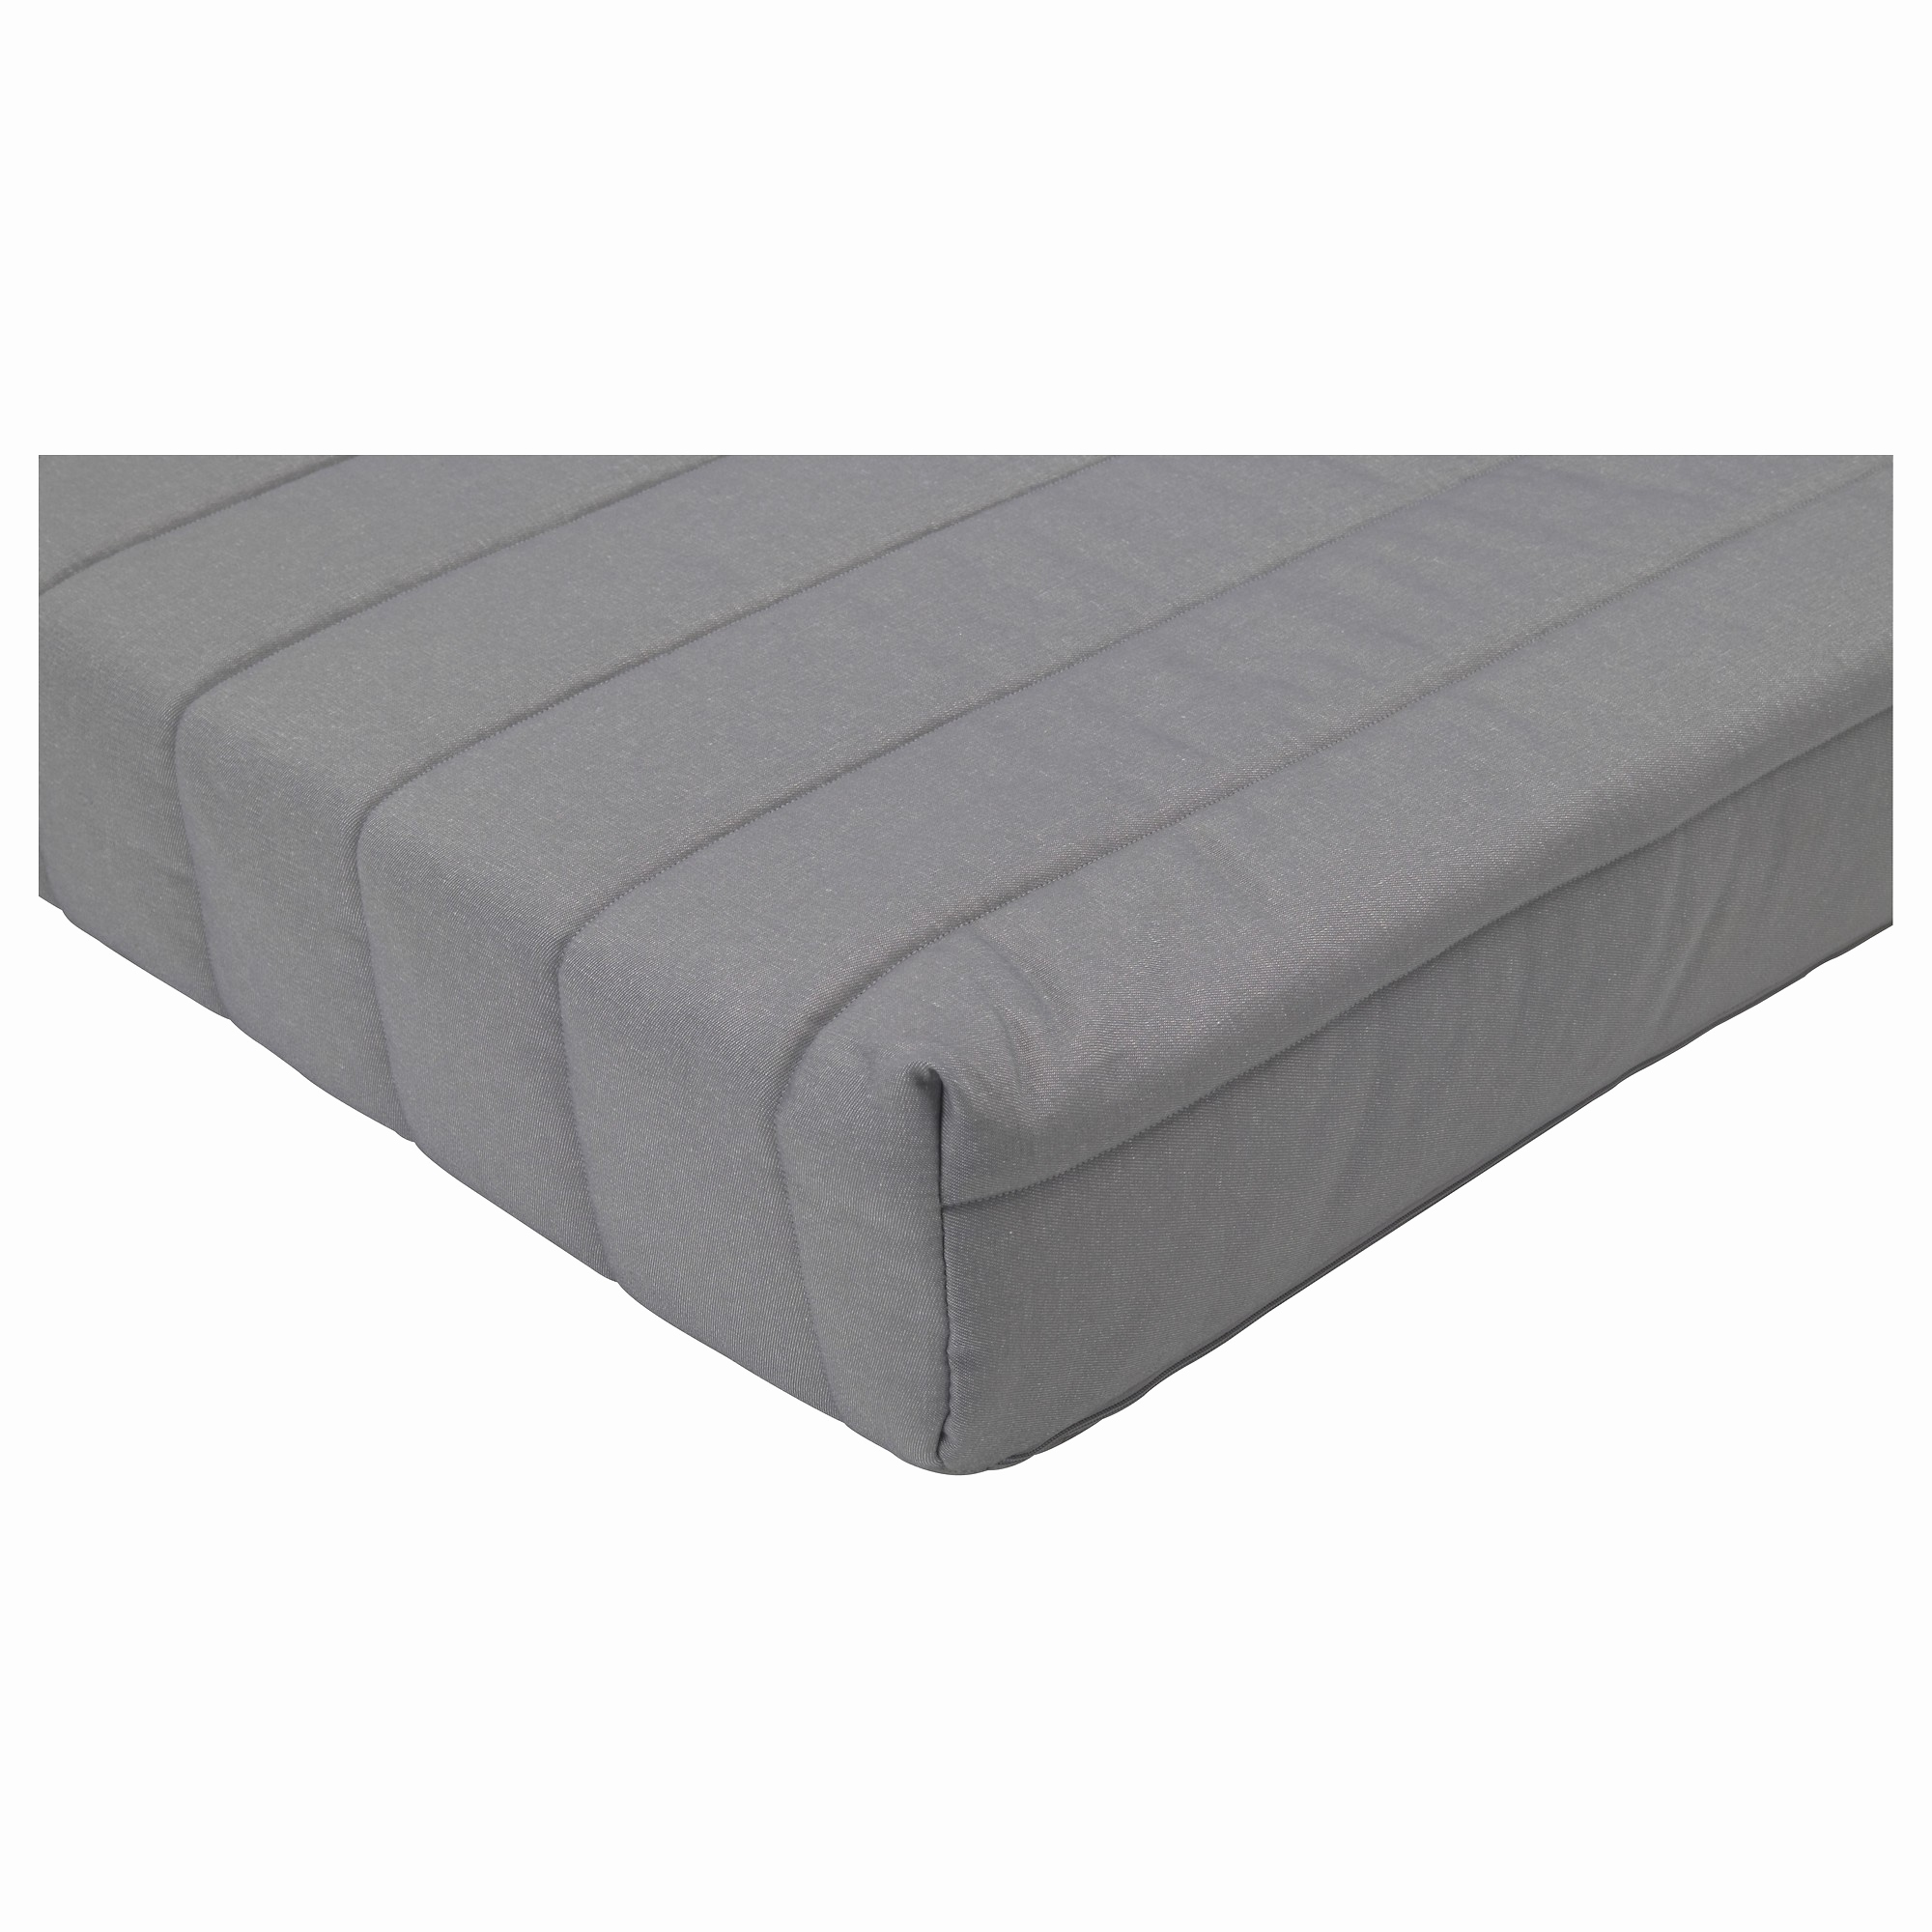 Futon Ikea Grankulla Nouveau Image Futon Une Place Good Futon some Tips to sofa Bed Avec Taille Lit